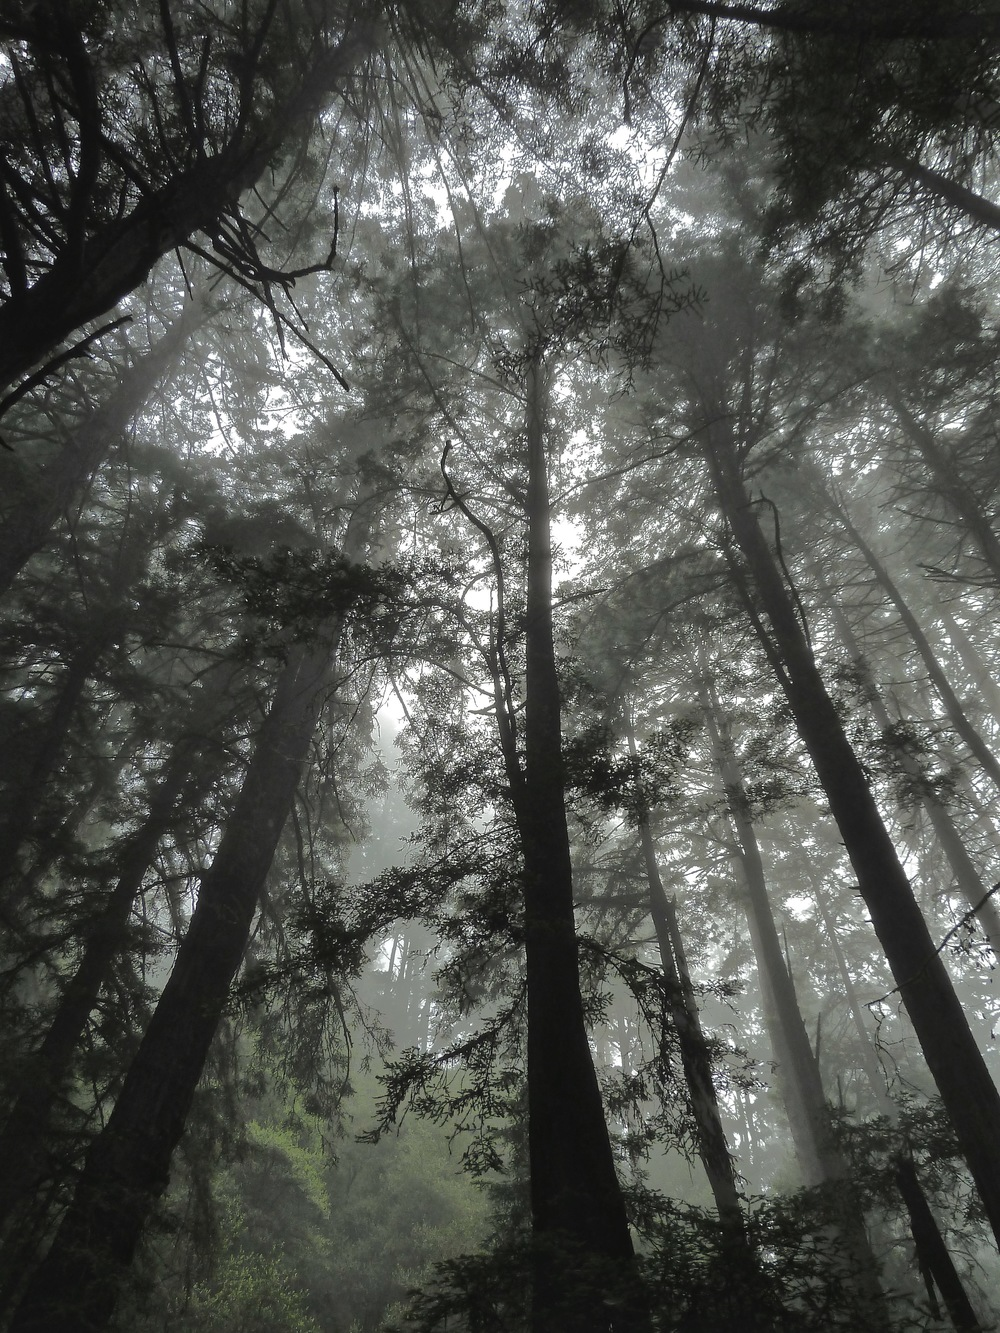 California coast redwoods on a foggy morning in the Steep Ravine, Mt. Tamalpais State Park.